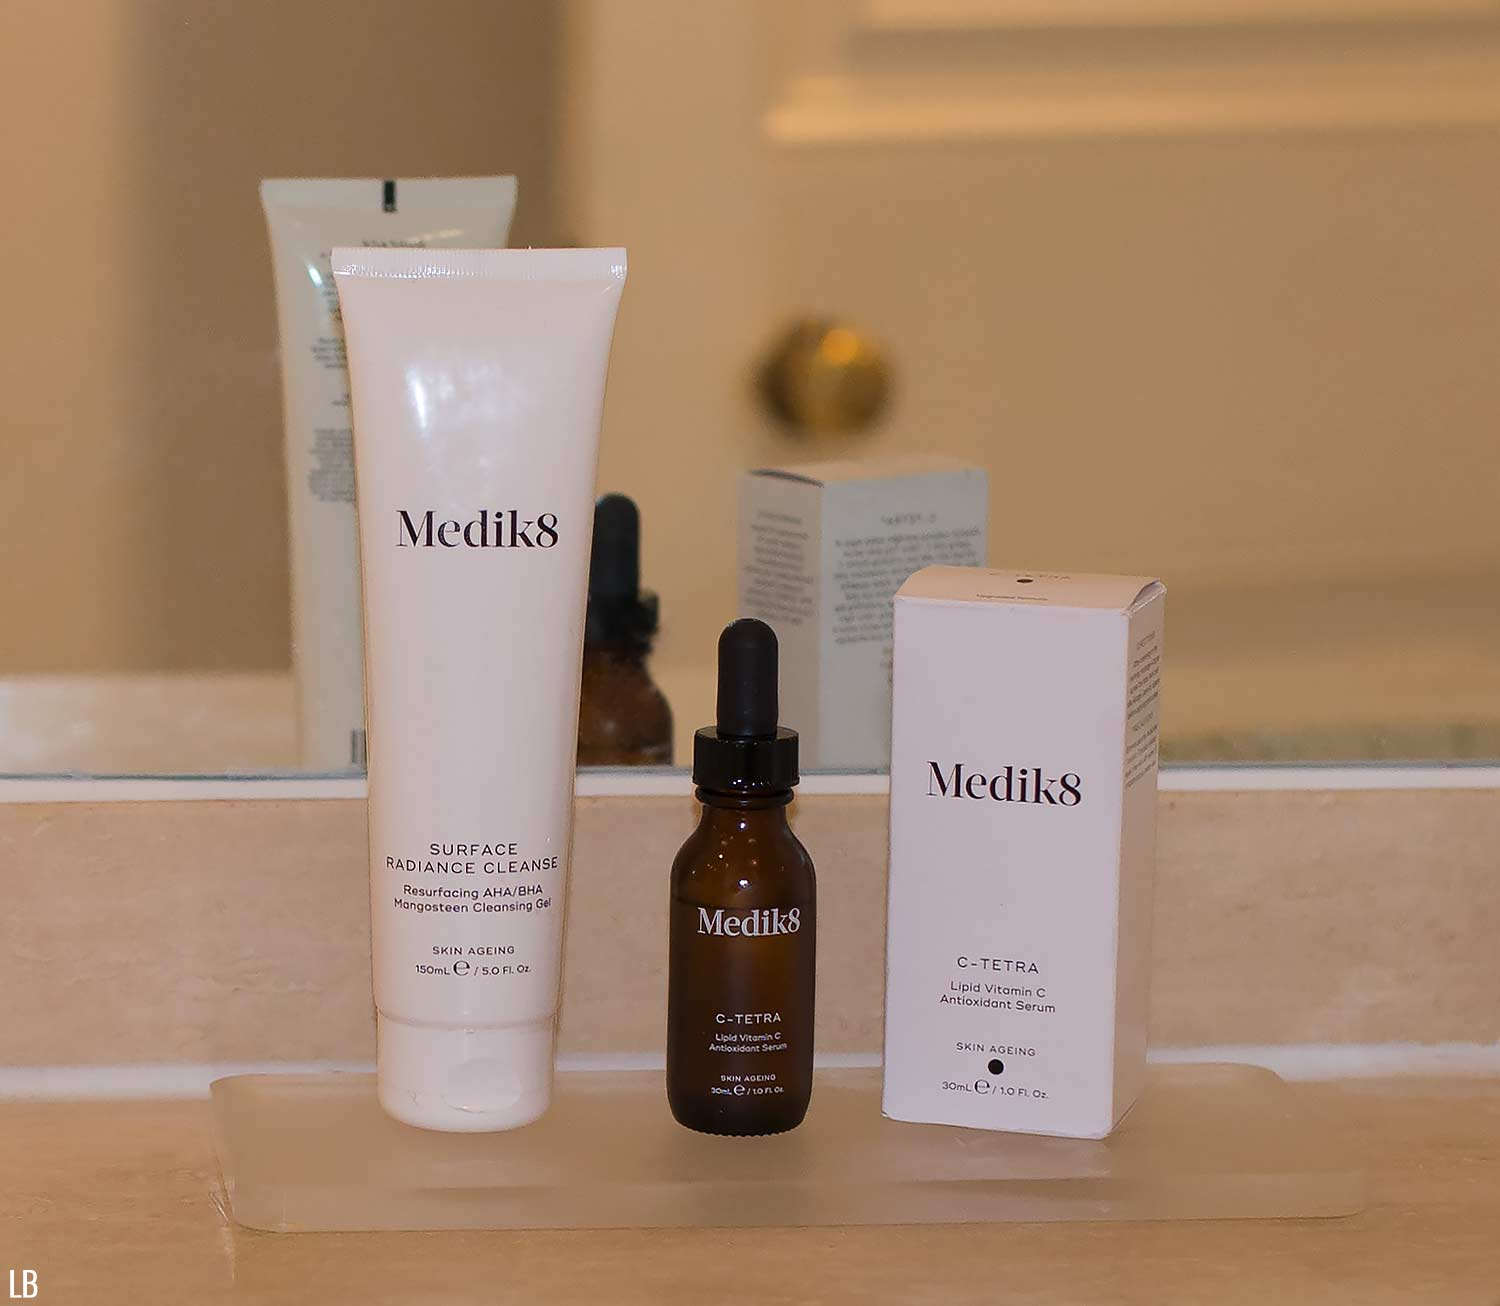 medik8 ce tetra serum reviews